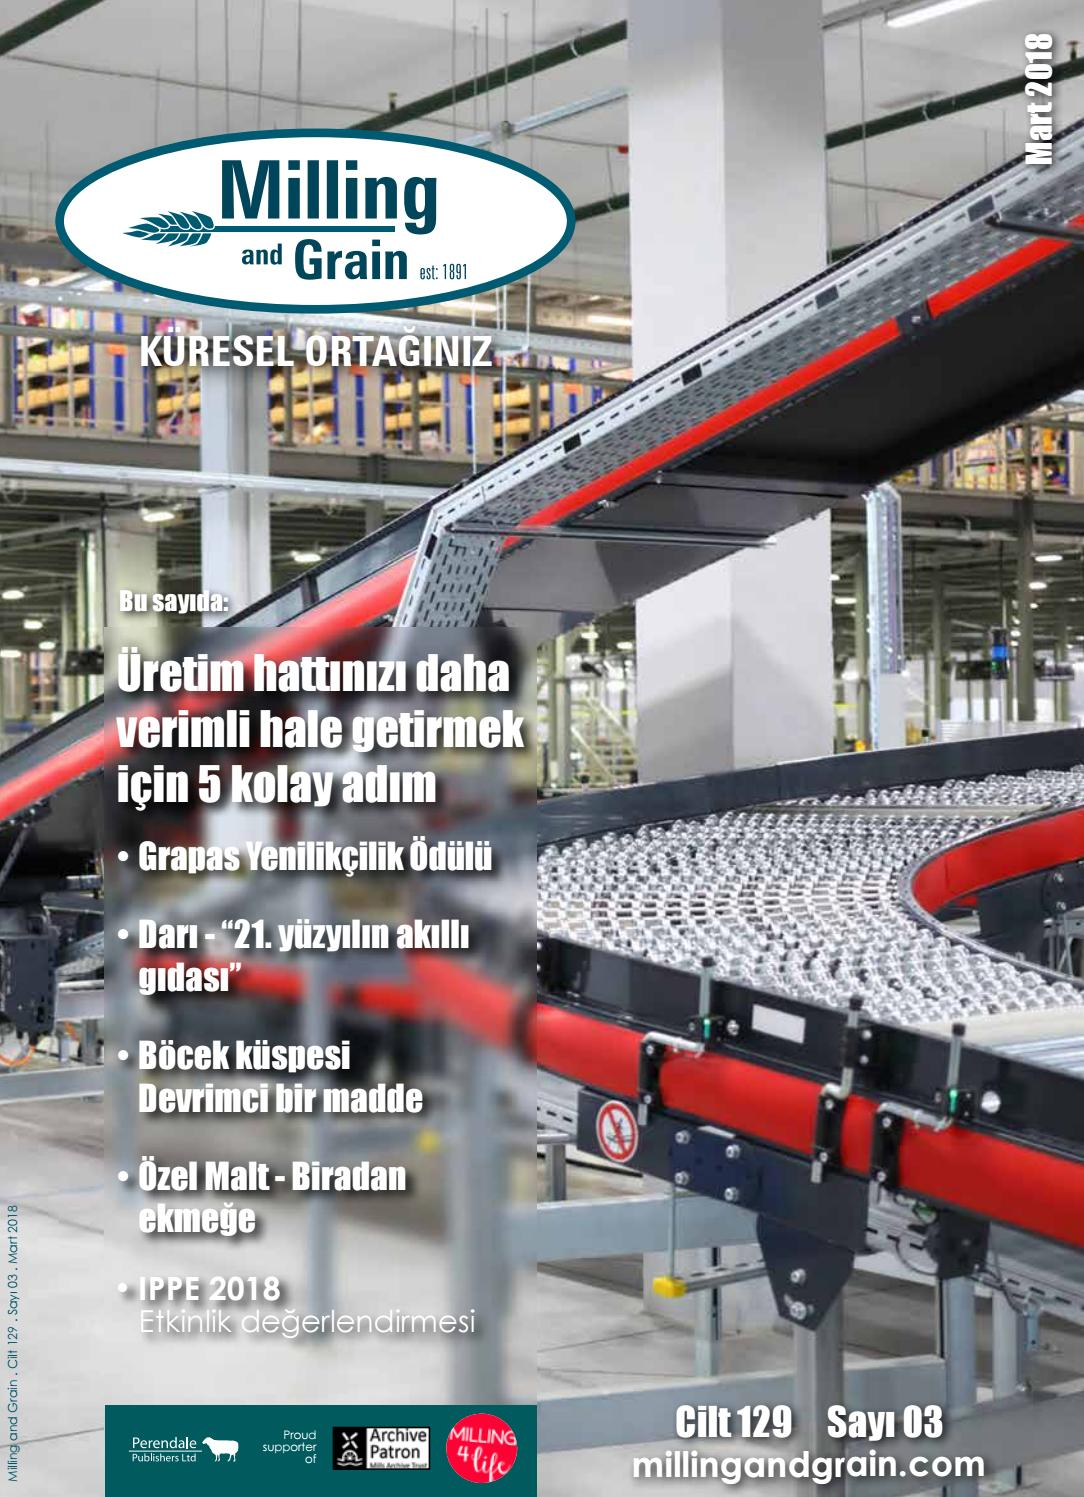 Pizza Family Braunschweig Turkish Language Edition Milling And Grain Issue 2 2018 By